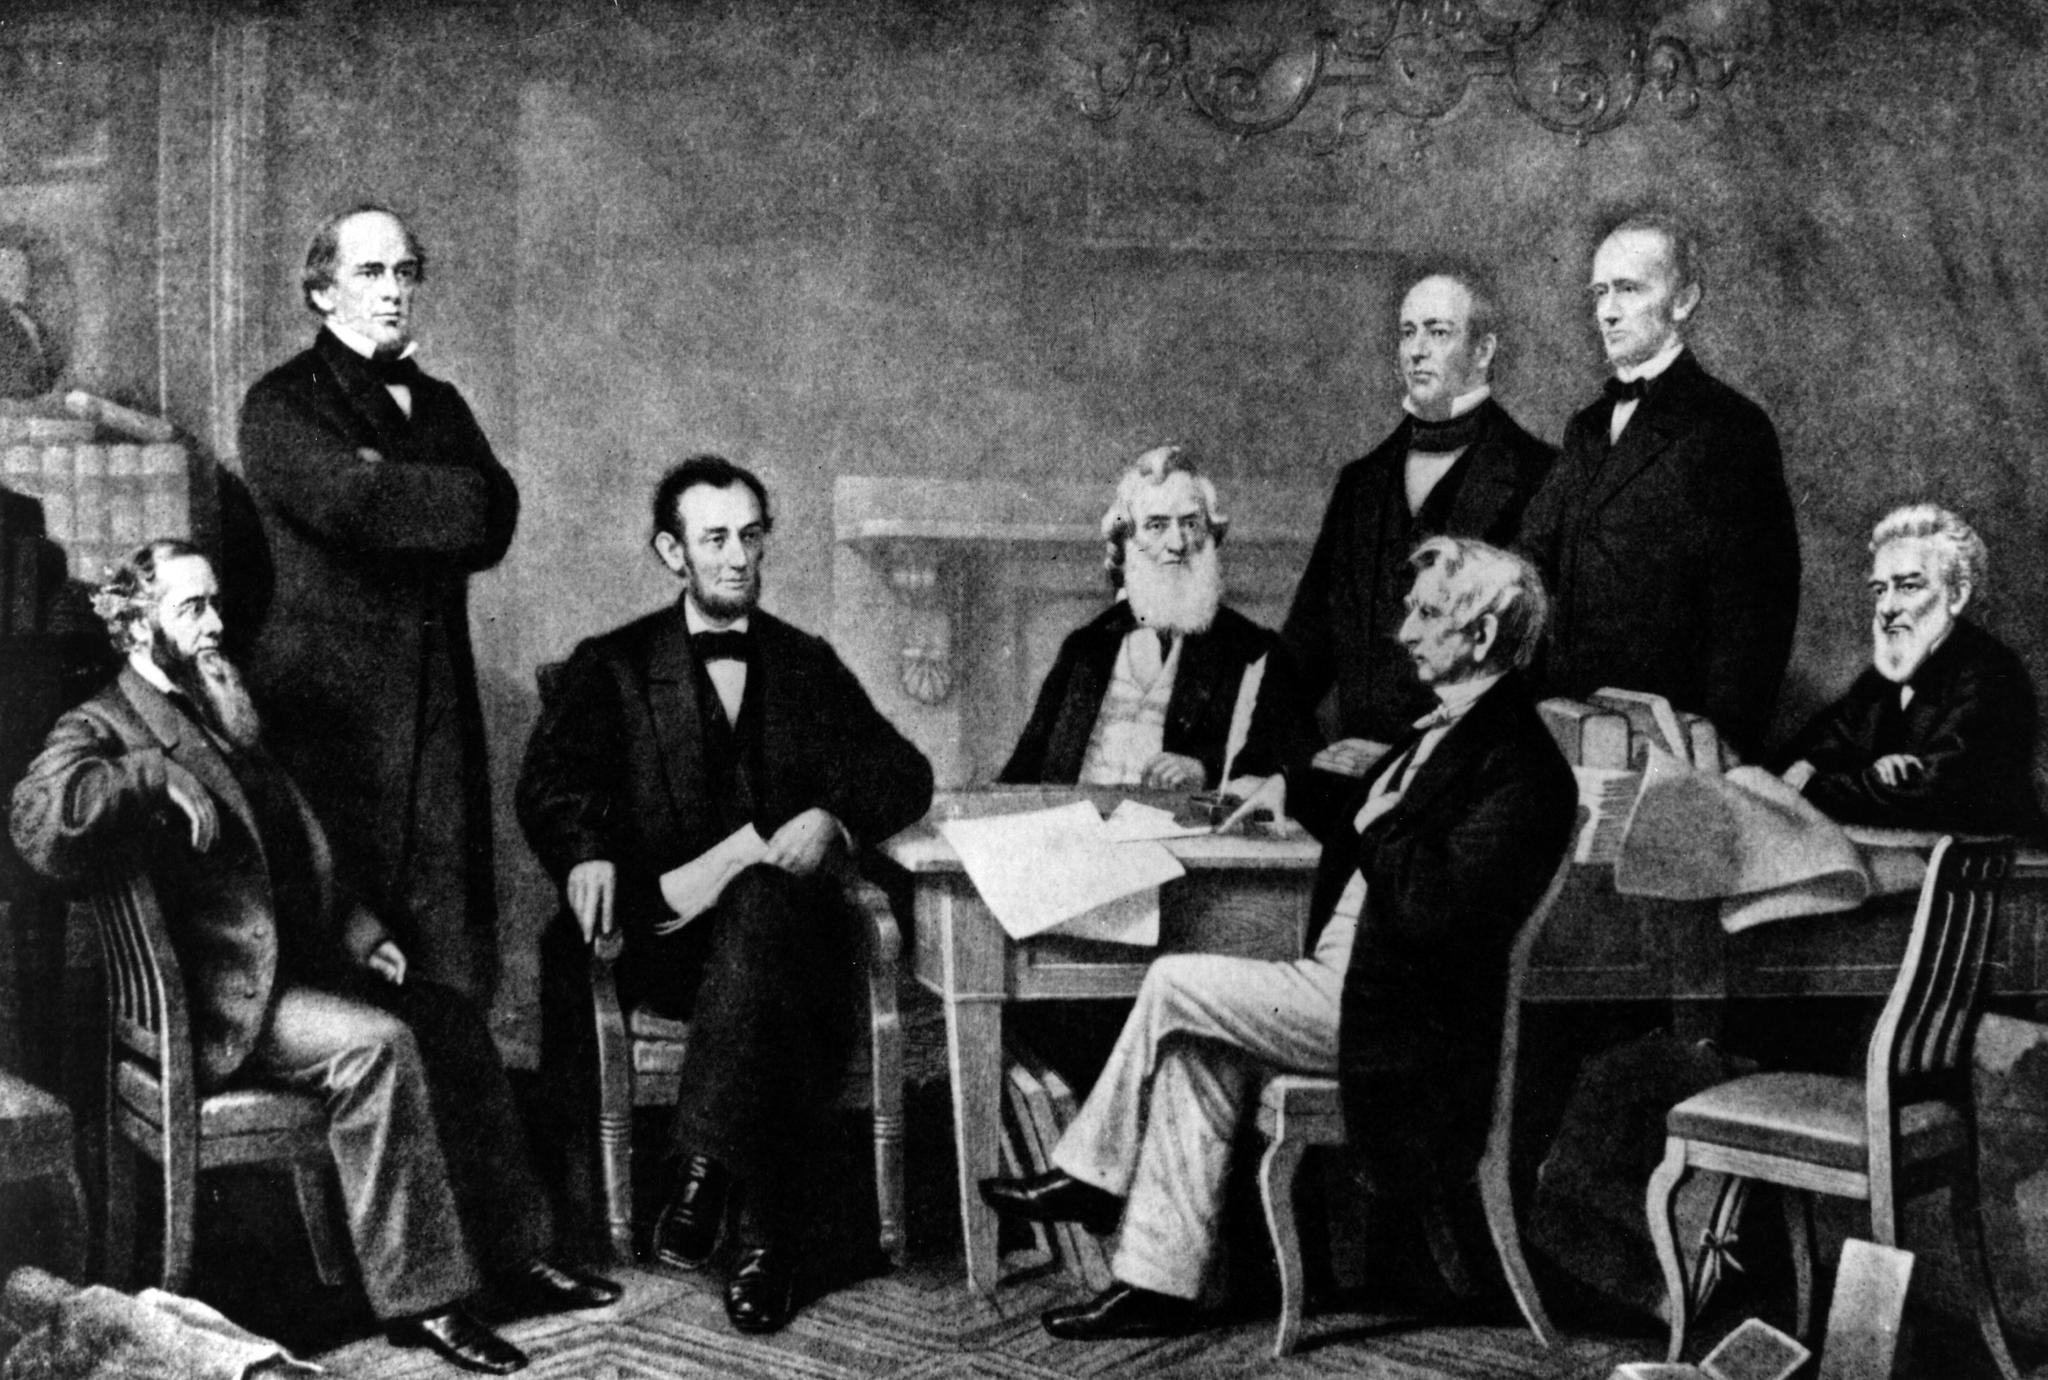 Abraham Lincoln, the 16th President of the United States of America, at the signing of the Emancipation Proclamation.